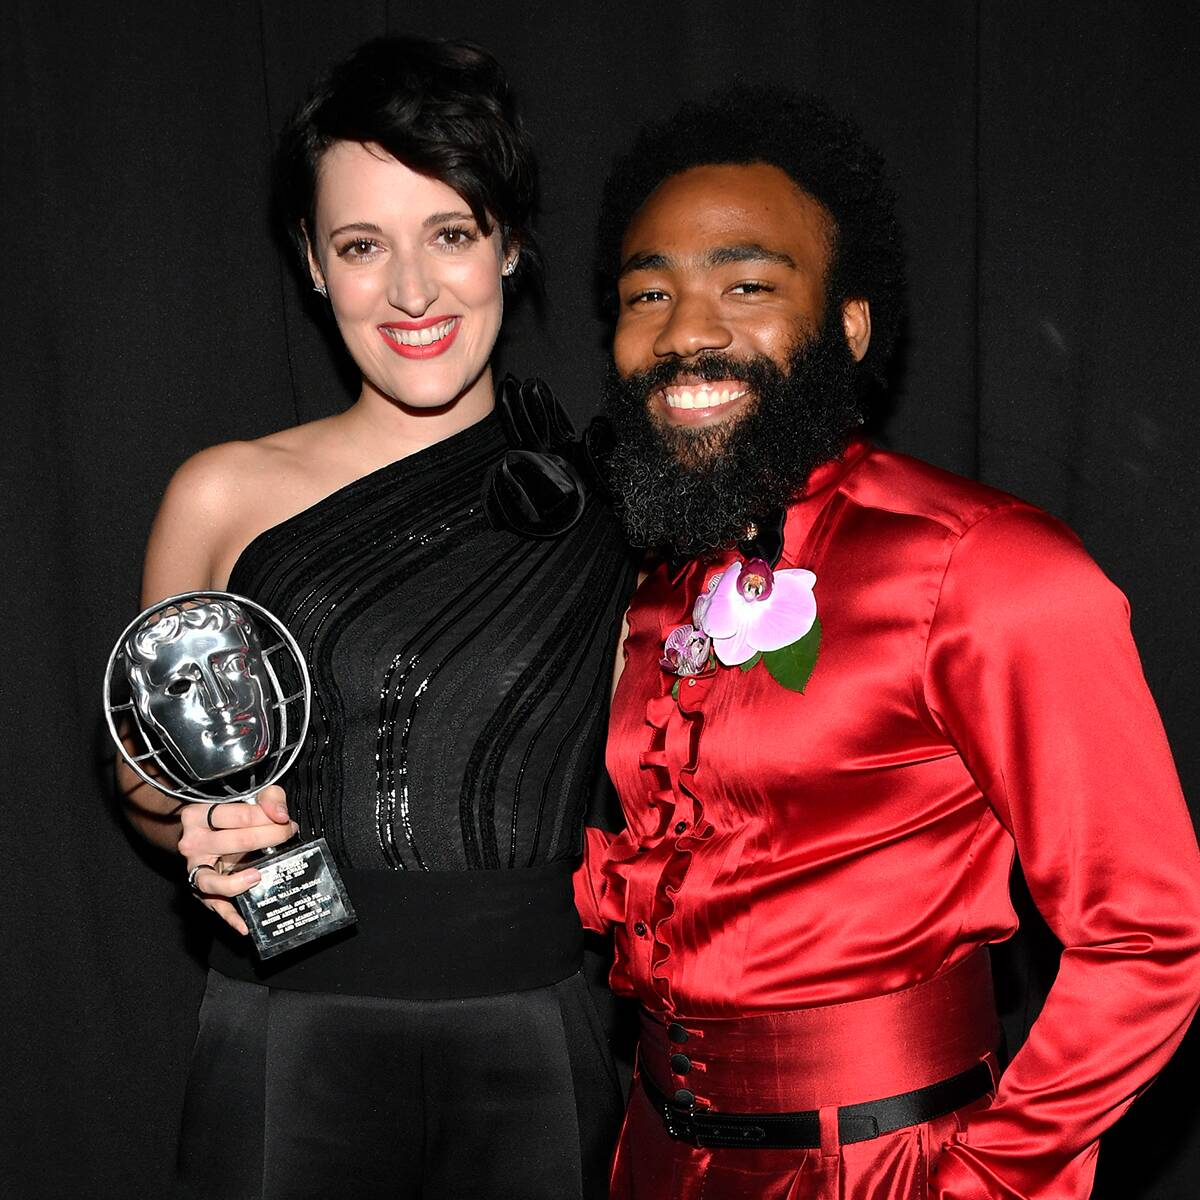 Move Over Angie and Brad: Phoebe Waller-Bridge and Donald Glover Are the New Mr. & Mrs. Smith